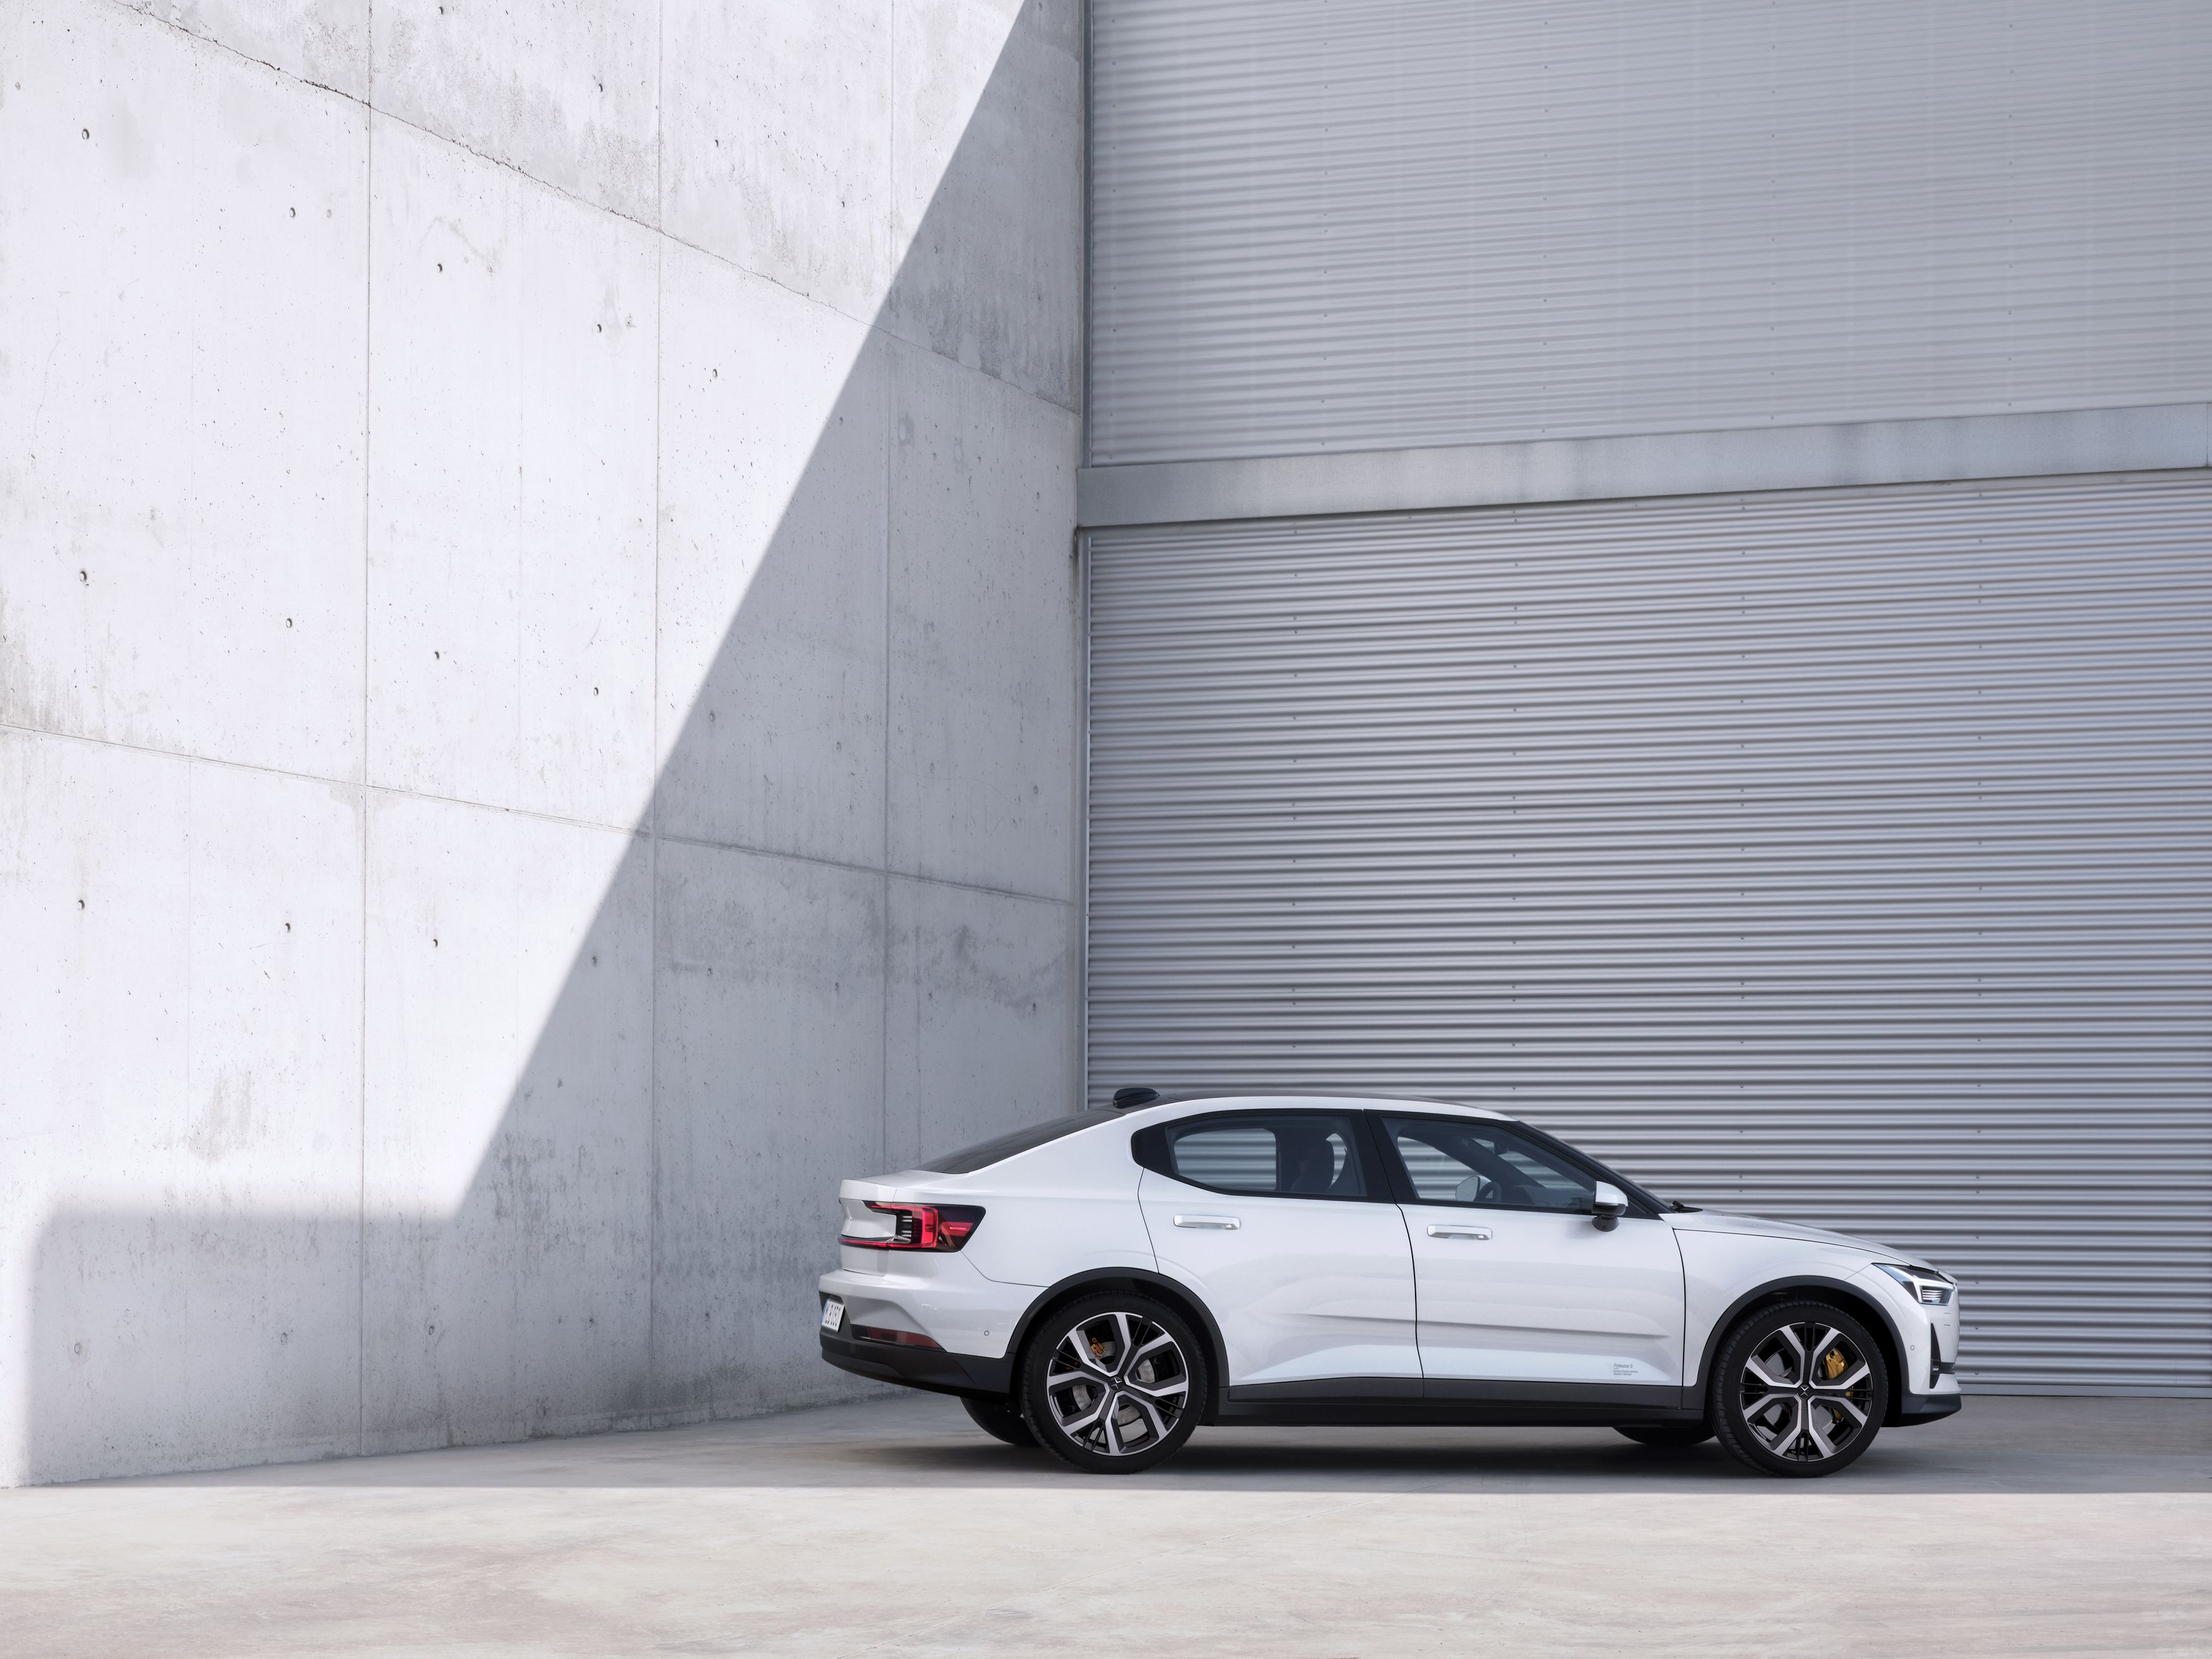 All-Electric 2020 Volvo XC40 Crossover Is Debuting Next Year >> 2020 Polestar 2 Is A 408 Hp All Electric Sedan To Fight Tesla